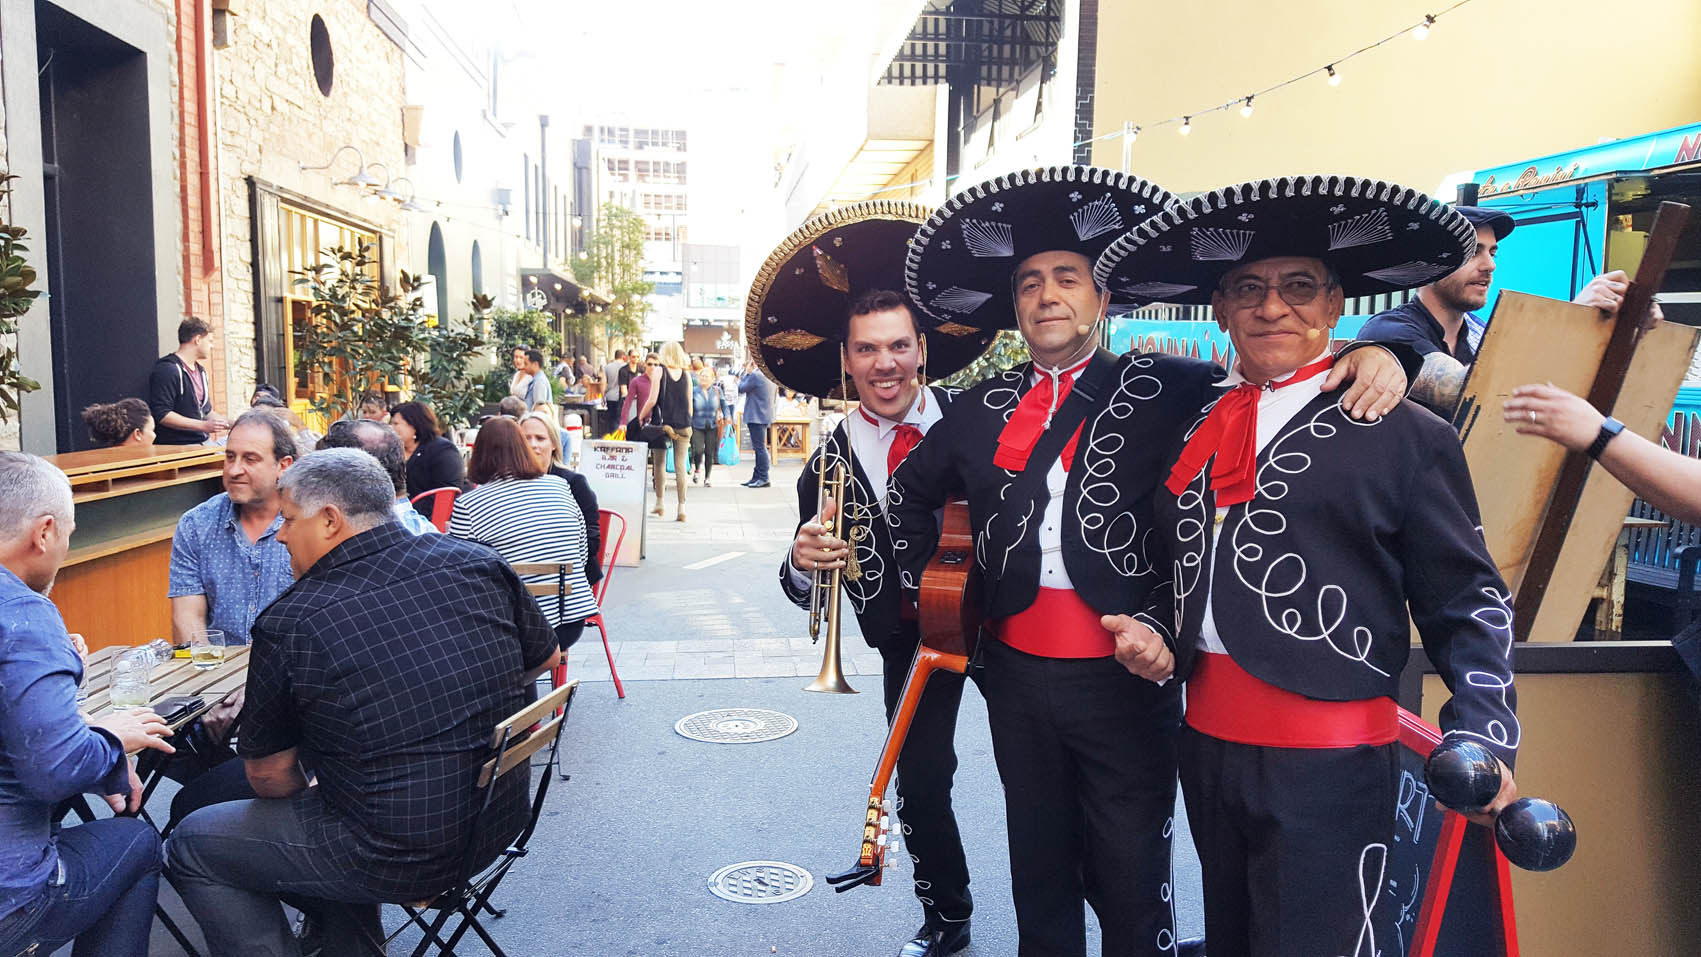 street-party-mexican-theme-adelaide-australia-singapore-melbourne-sydney-perth-duabi-hong-kong-japan-south-korea, sa tourism, event management adelaide